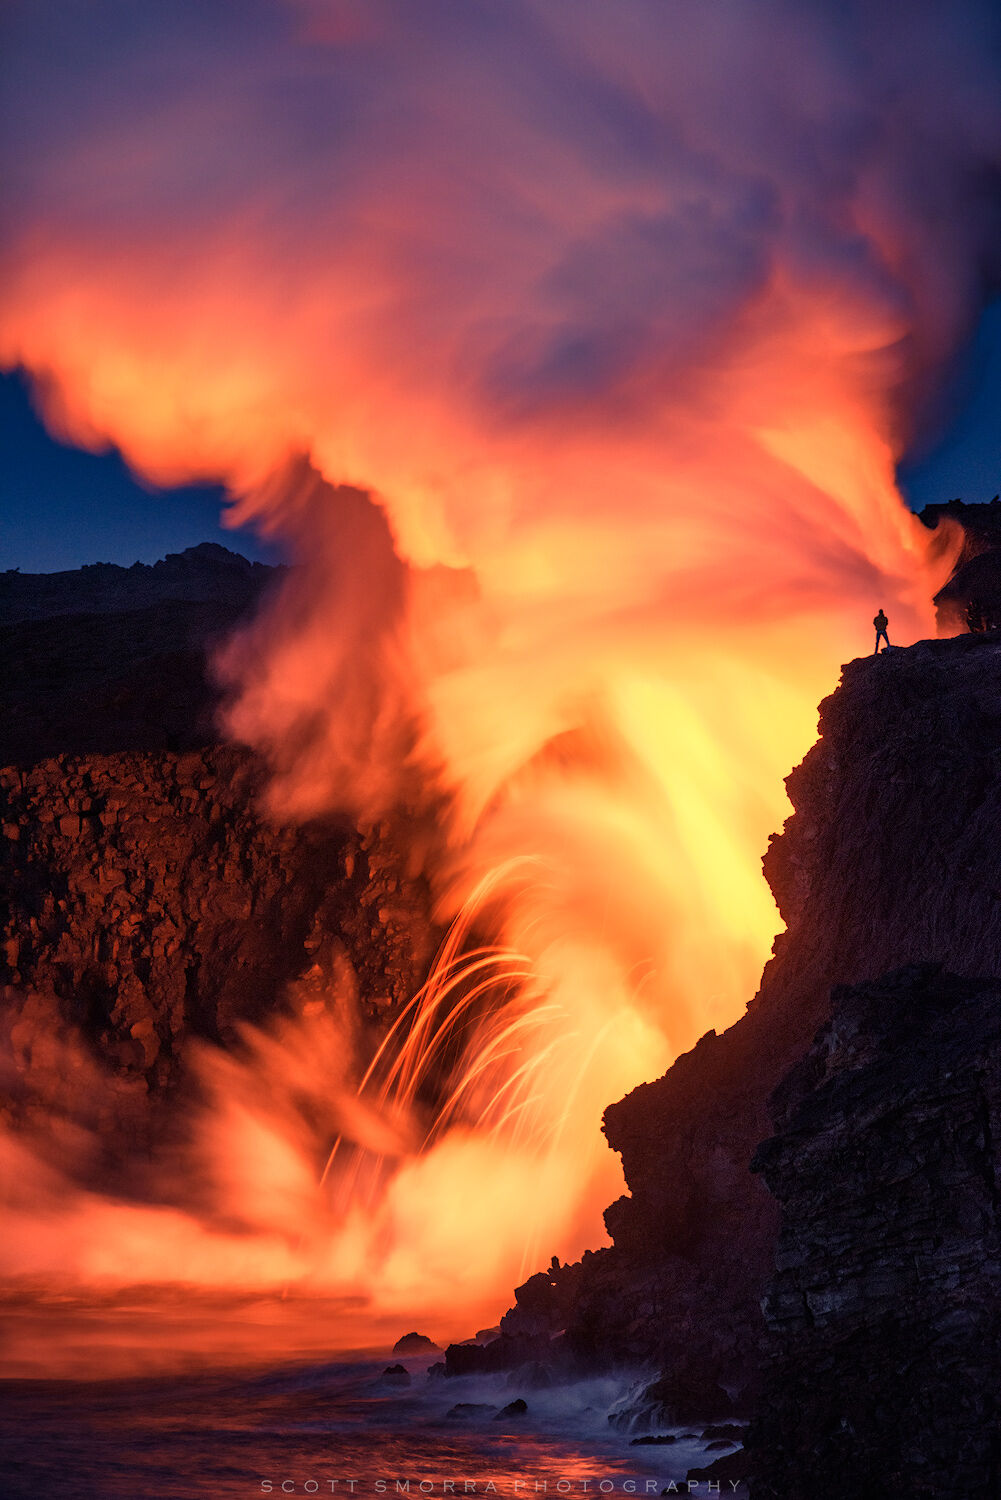 Fine Art Limited Edition of 100 - A lone figure on the edge of the cliffs observes lava pouring directly into the ocean at the...